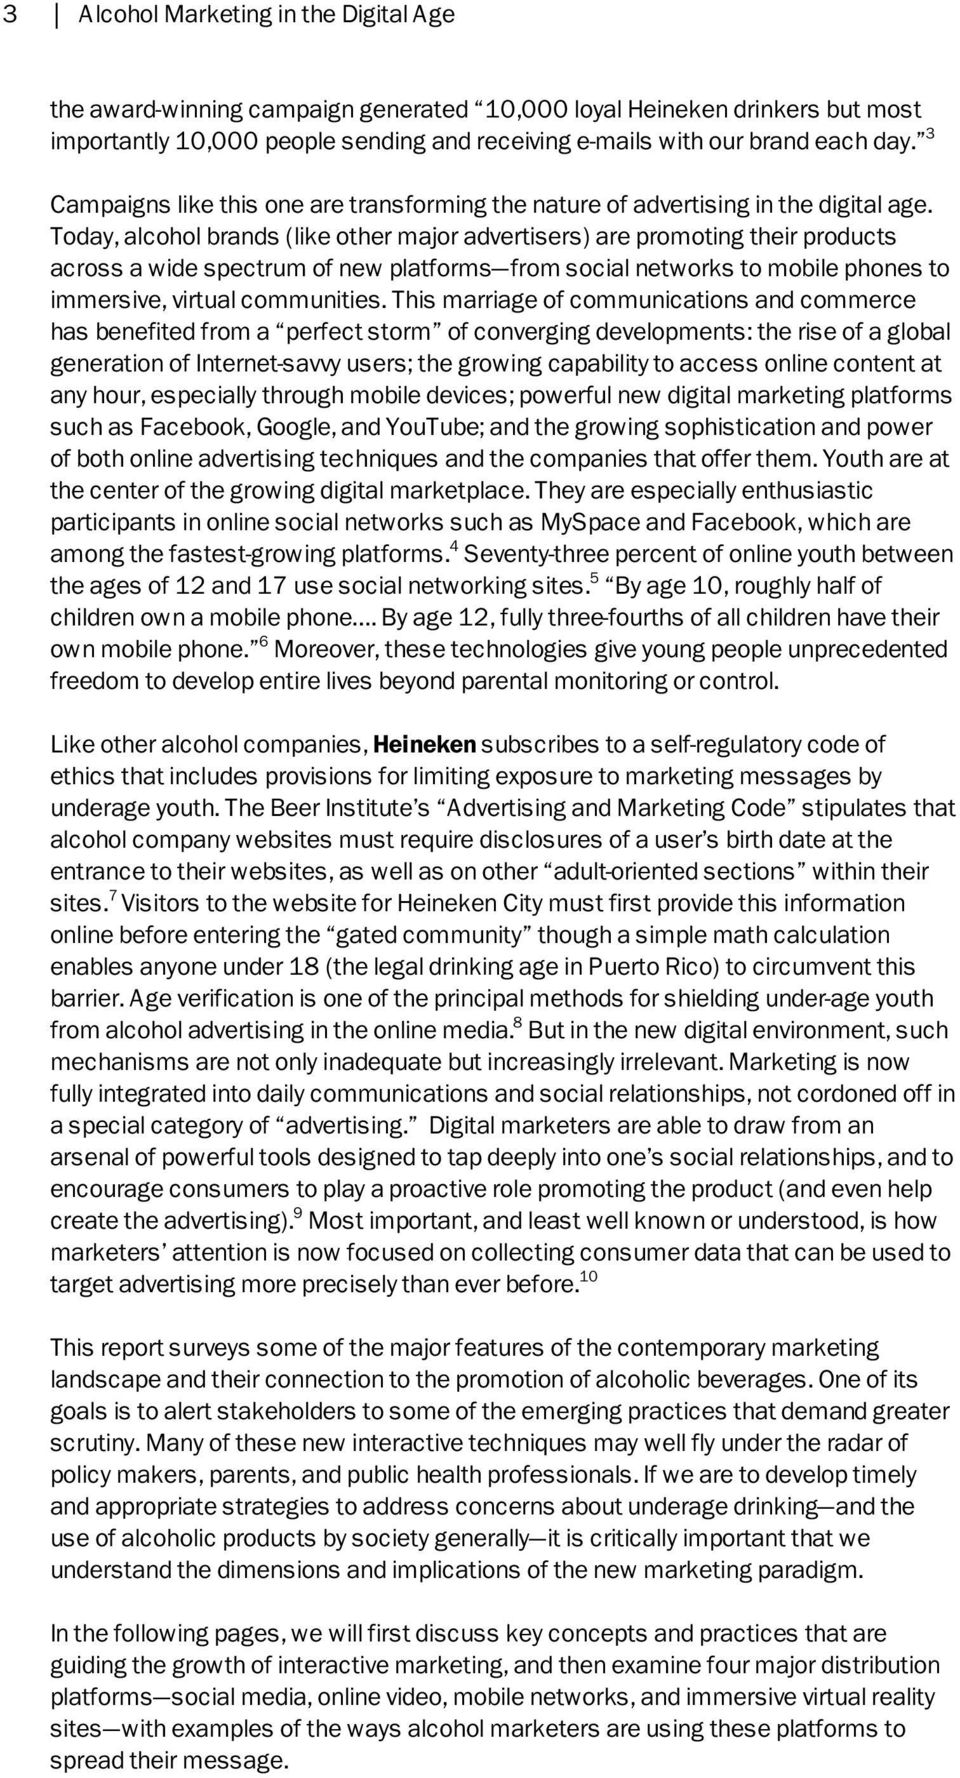 Today, alcohol brands (like other major advertisers) are promoting their products across a wide spectrum of new platforms from social networks to mobile phones to immersive, virtual communities.